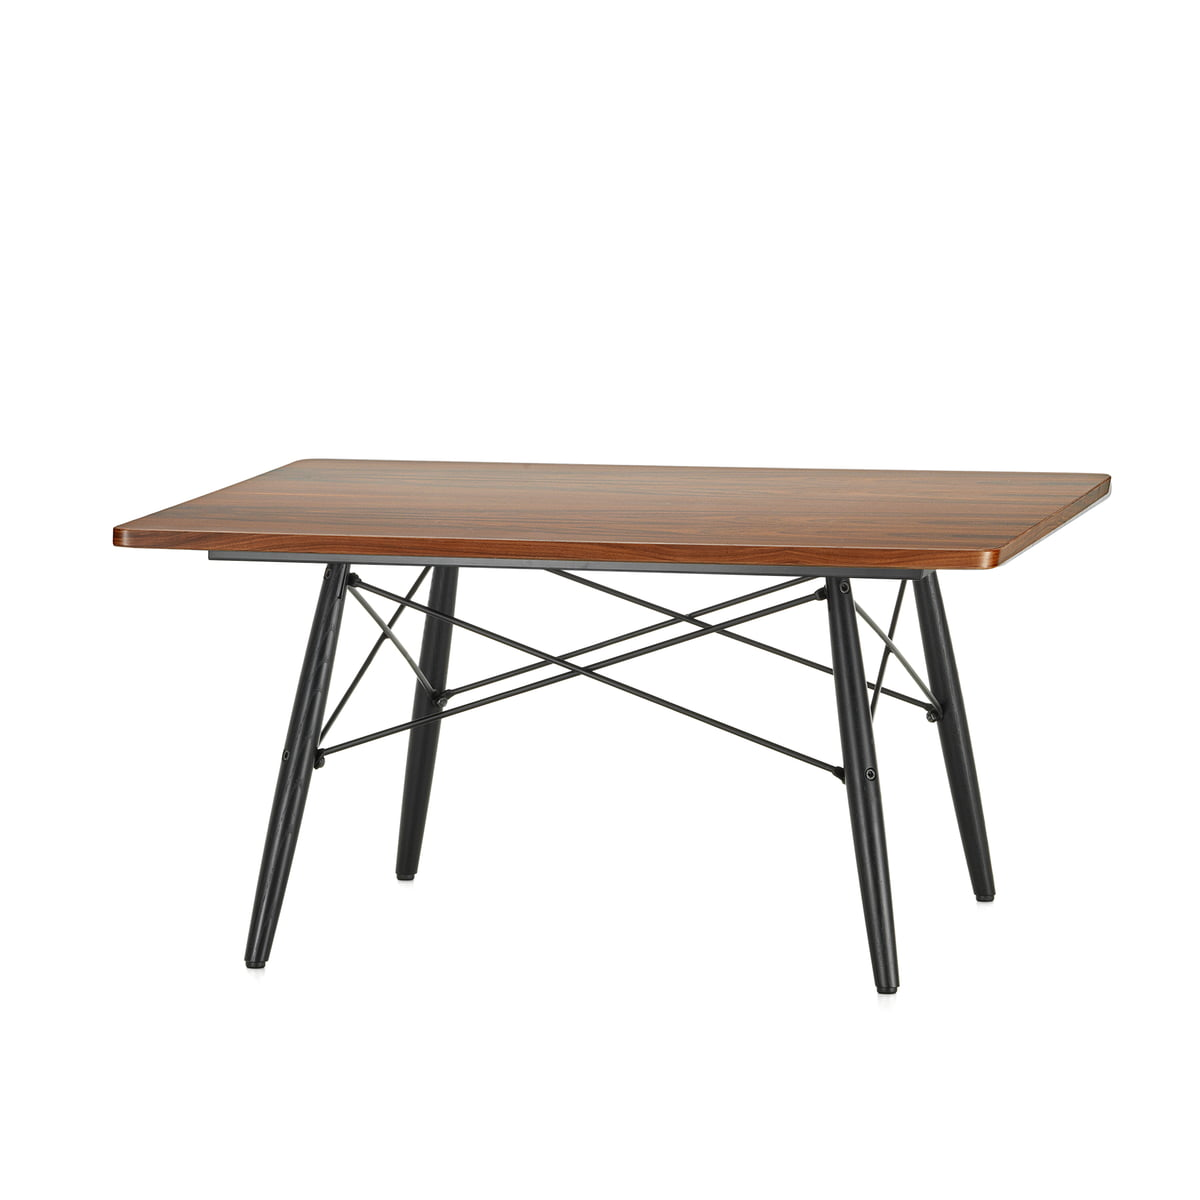 Eames Coffee Table Square: Eames Coffee Table By Vitra In The Shop